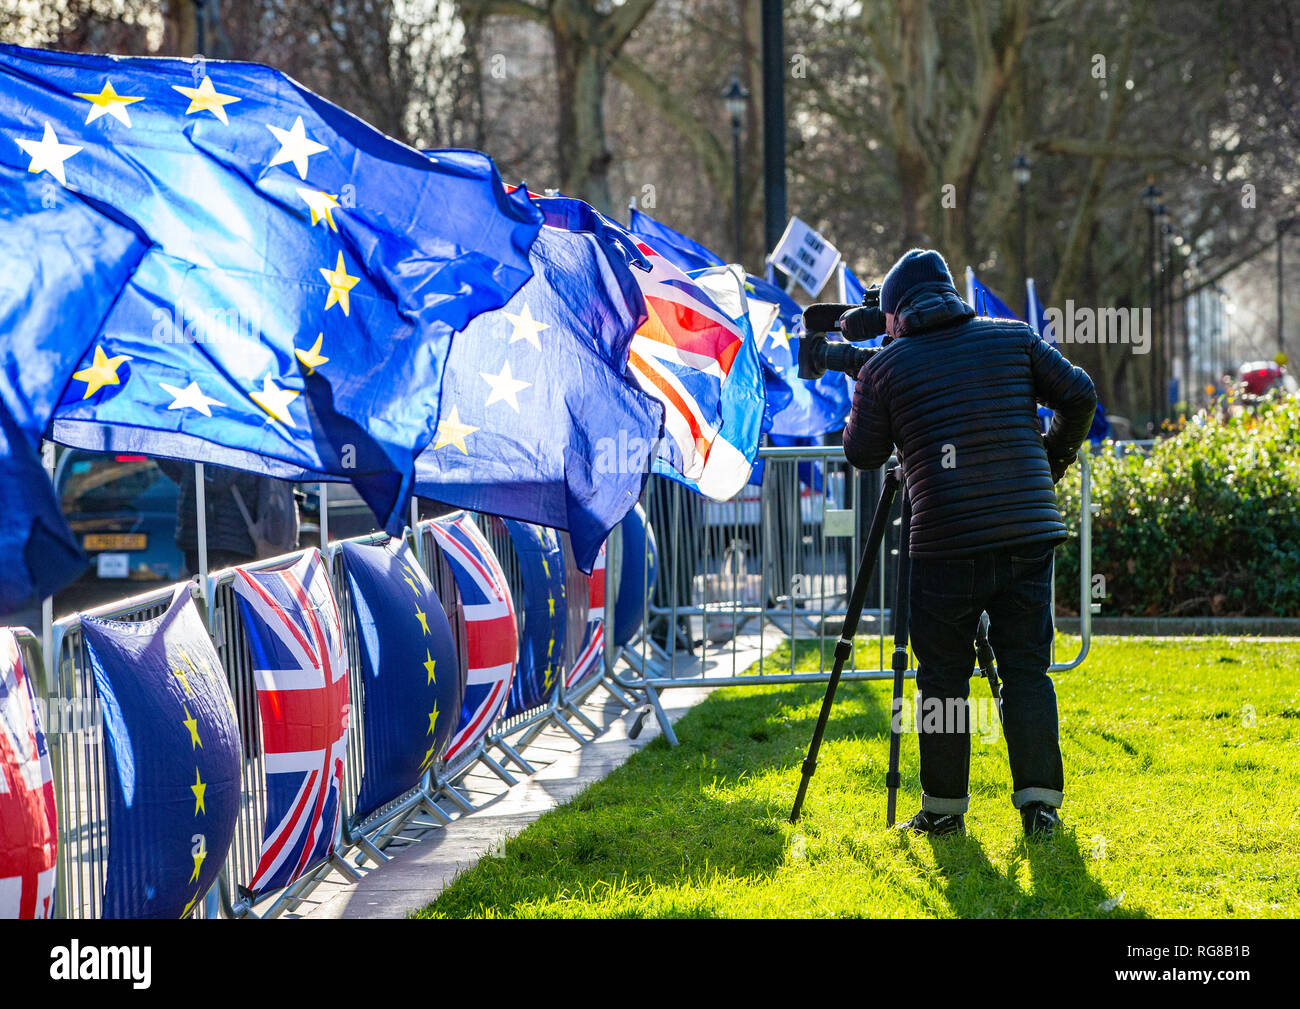 London, UK. 28th Jan, 2019. Pro European Union flags on College Green in Westminster one day before another crucial Brexit vote. The UK Parliament will debate and vote on a 'Plan B' Brexit plan from Theresa May's government on 29 January, it was announced on Thursday. May suffered one of the biggest defeats in British political history earlier this week, when her withdrawal agreement - negotiated for two years with the EU - was defeated by 230 votes Credit: Tommy London/Alamy Live News - Stock Image